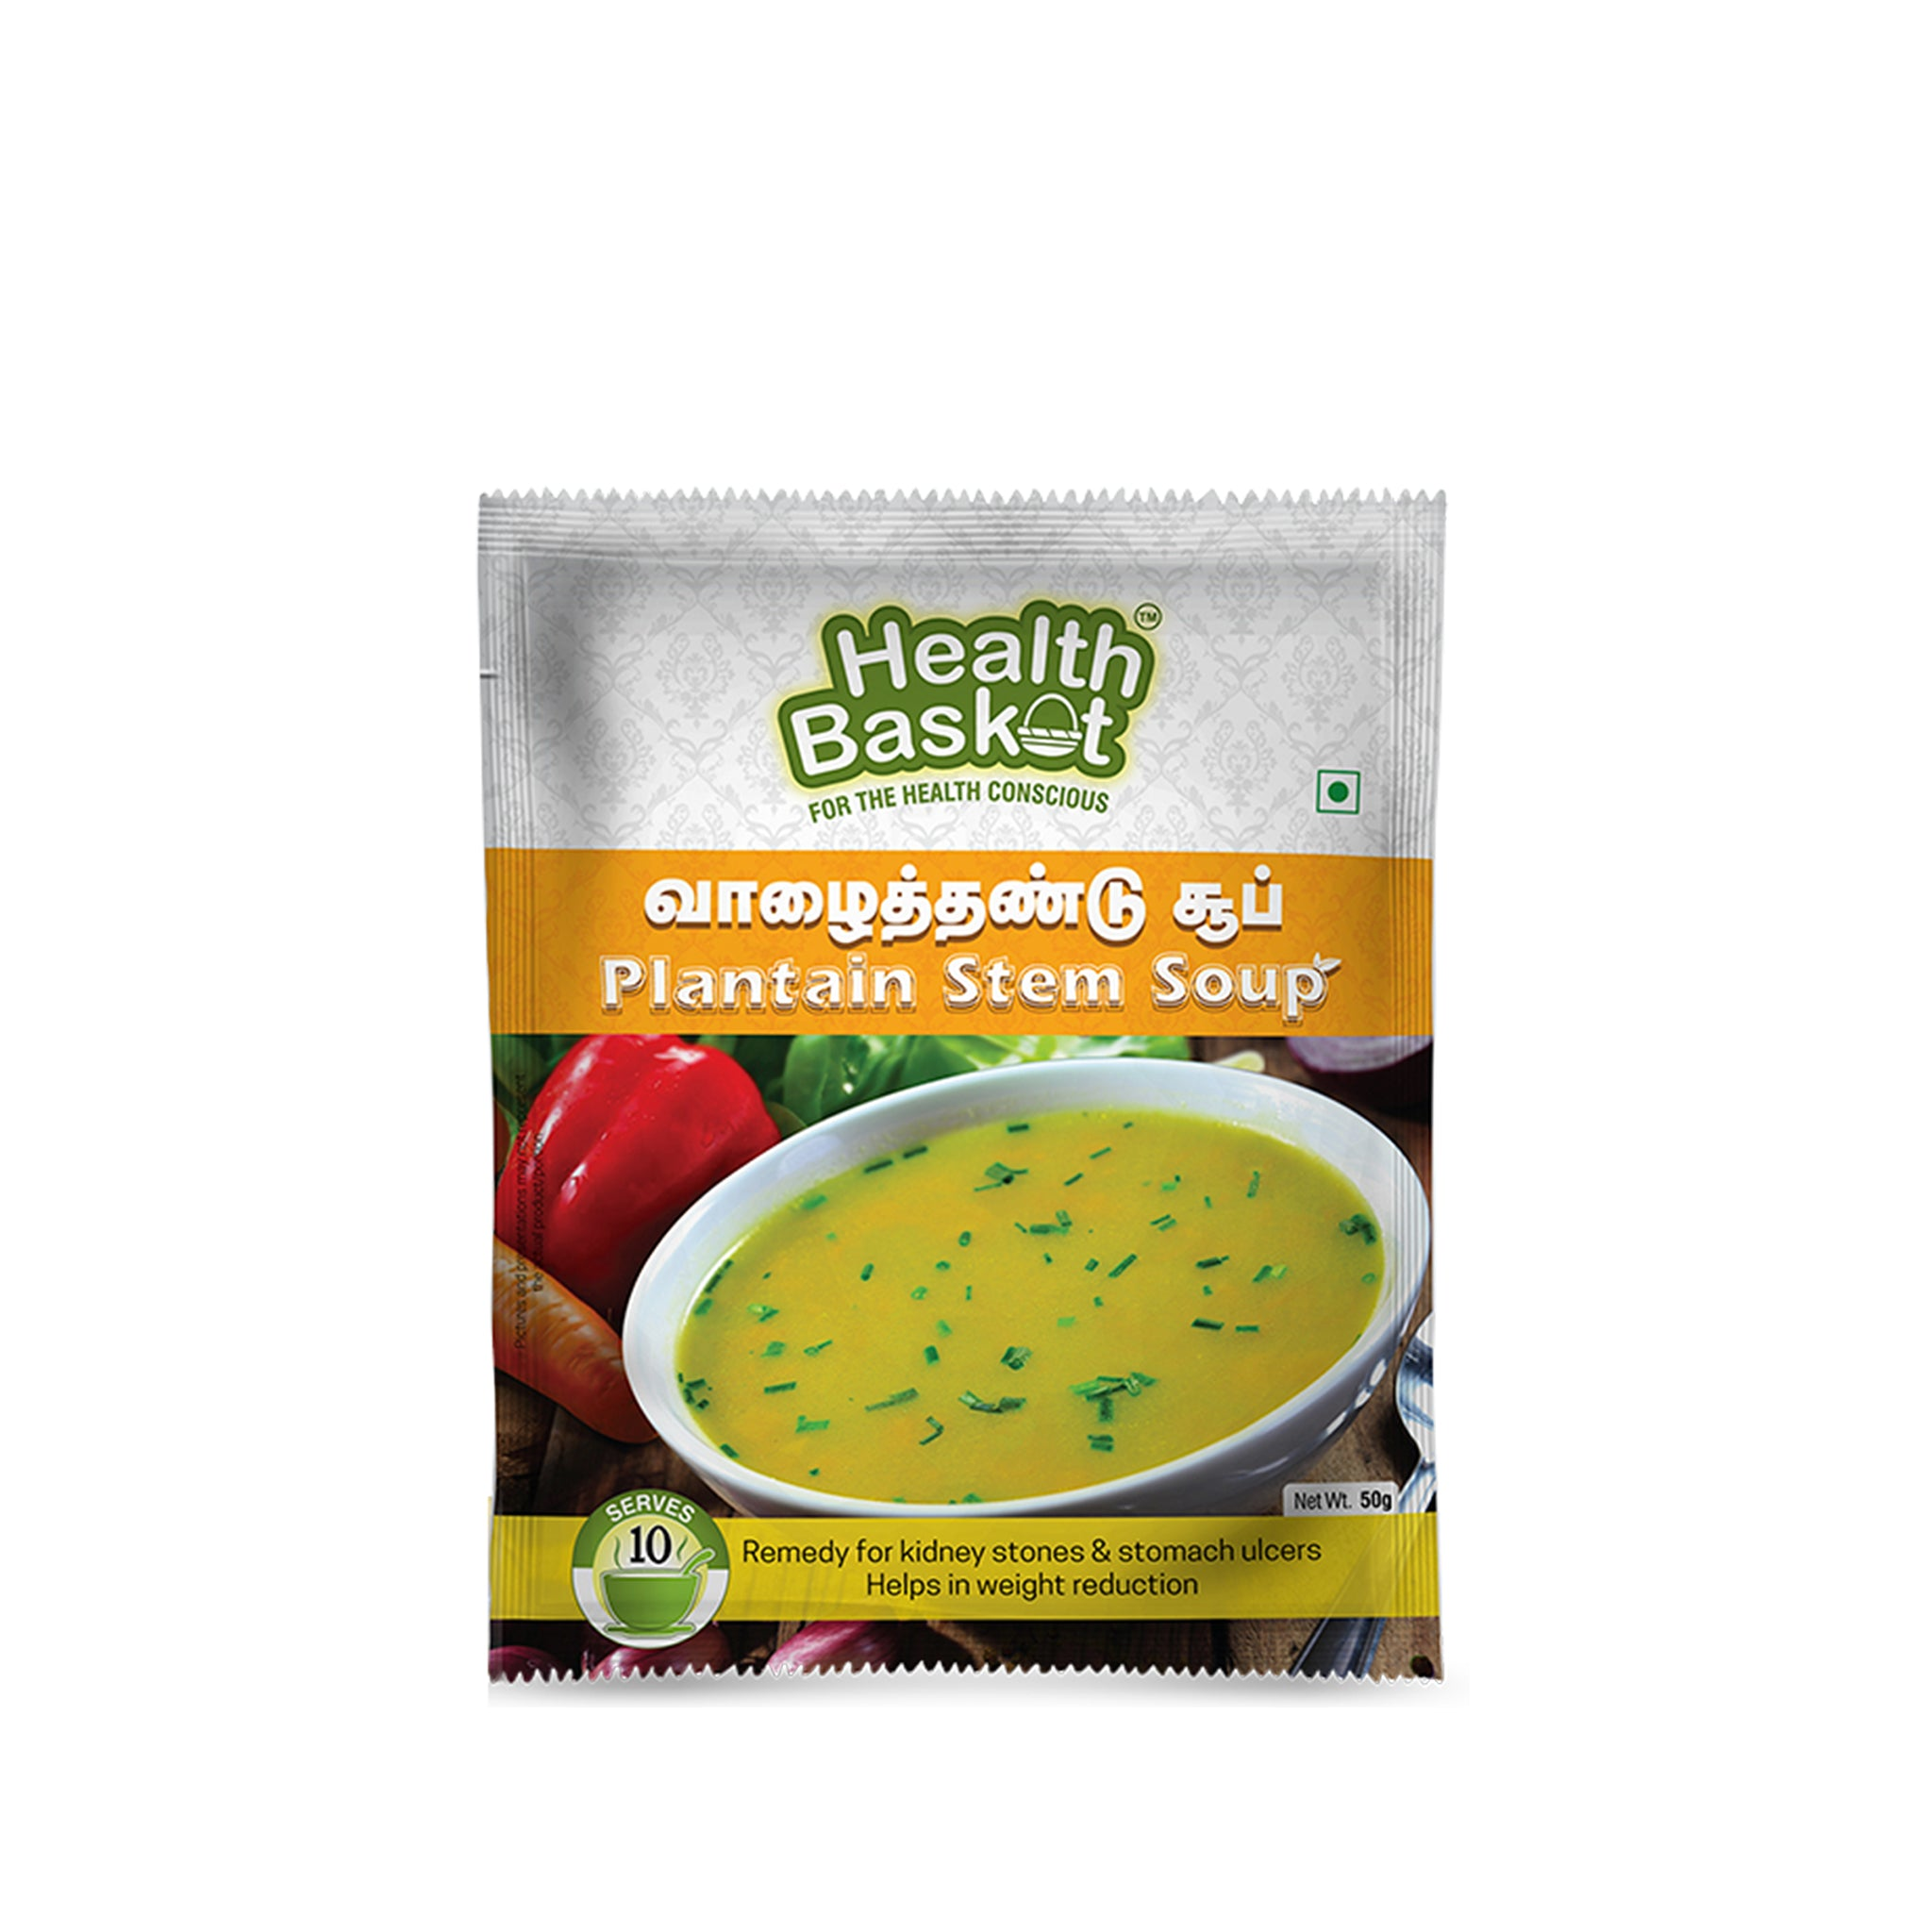 Plantain Stem Soup